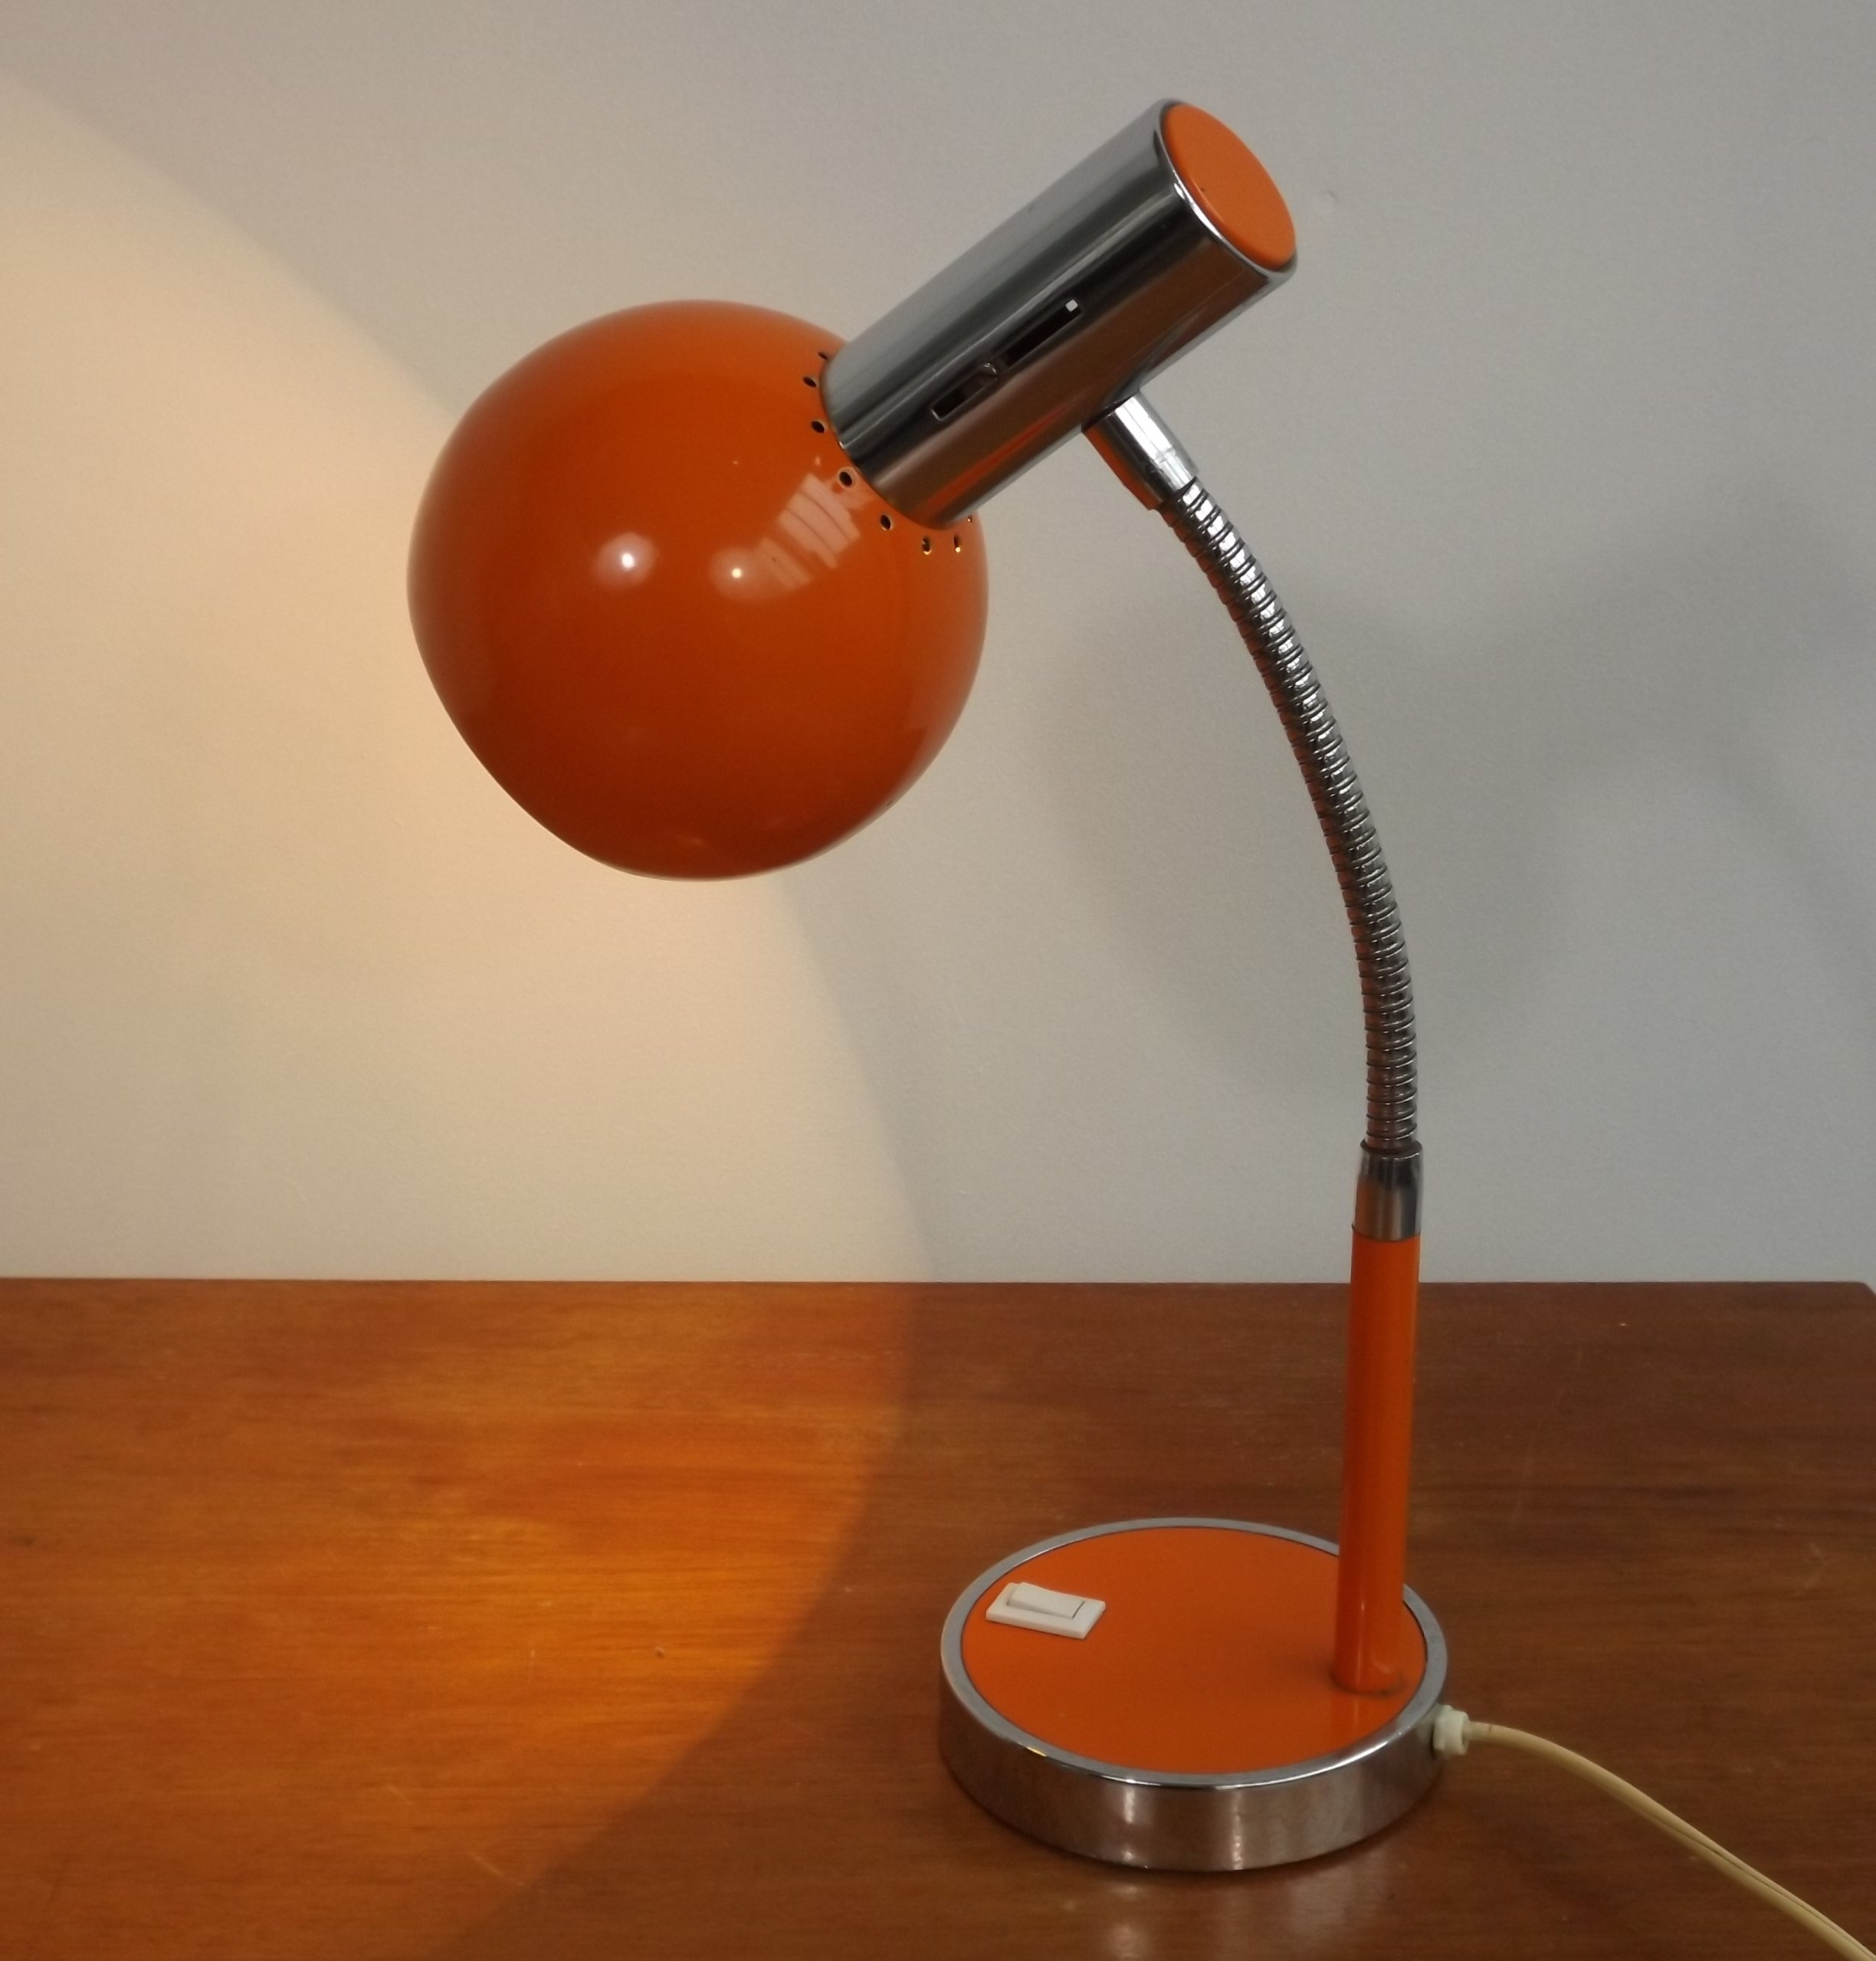 Wohndesign lampen vintage style for Wohndesign 70er